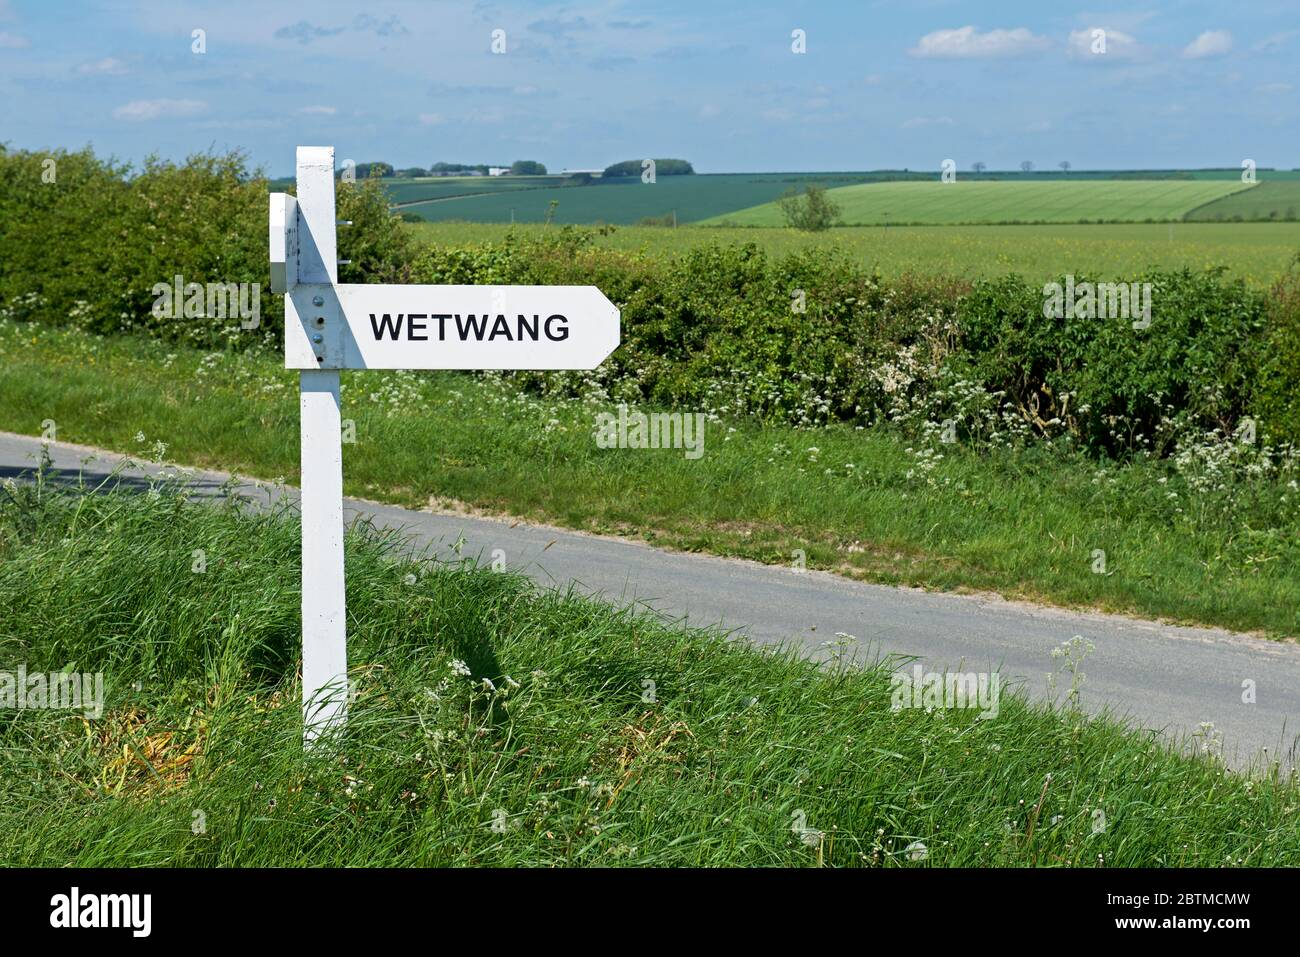 road-sign-wetwang-on-minor-road-near-huggate-yorkshire-wolds-east-yorkshire-england-uk-2BTMCMW.jpg